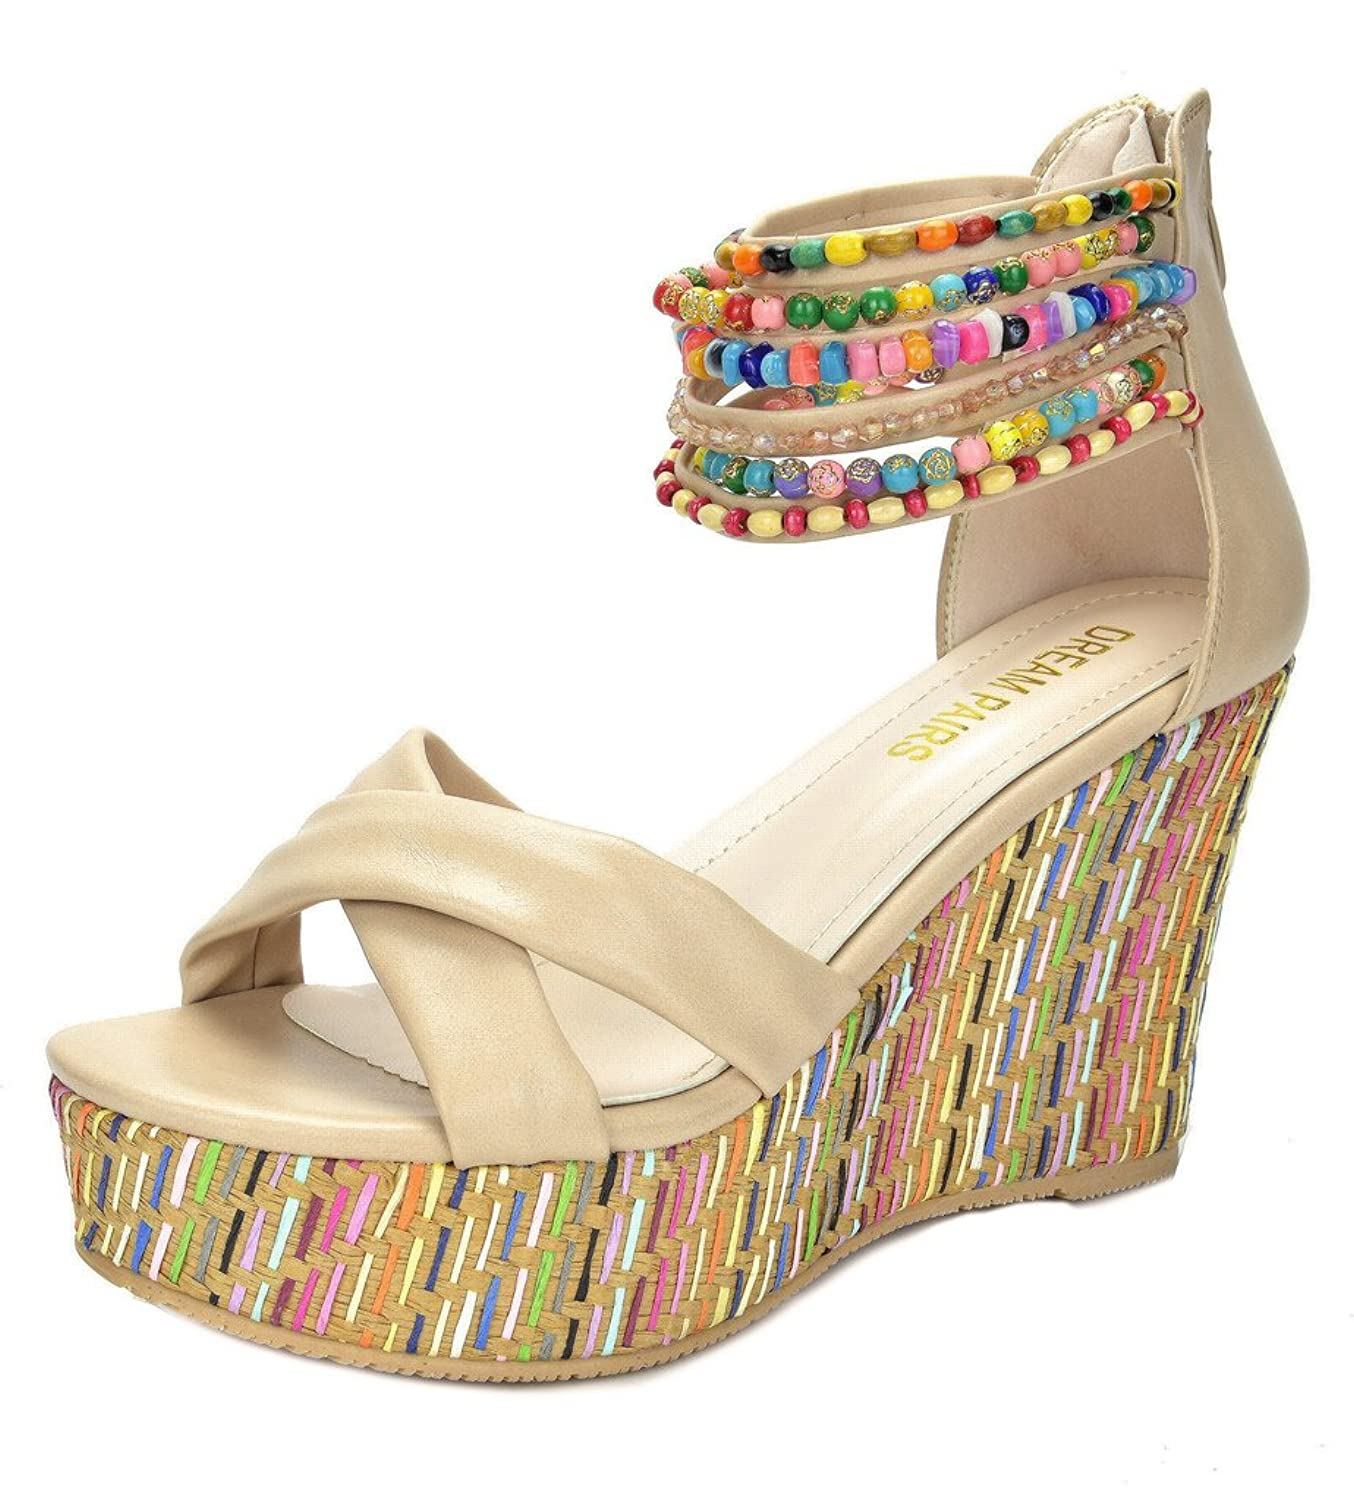 Dream Pairs Women's Wedge Sandals Pearls Across The Top Platform High Heels by Dream Pairs